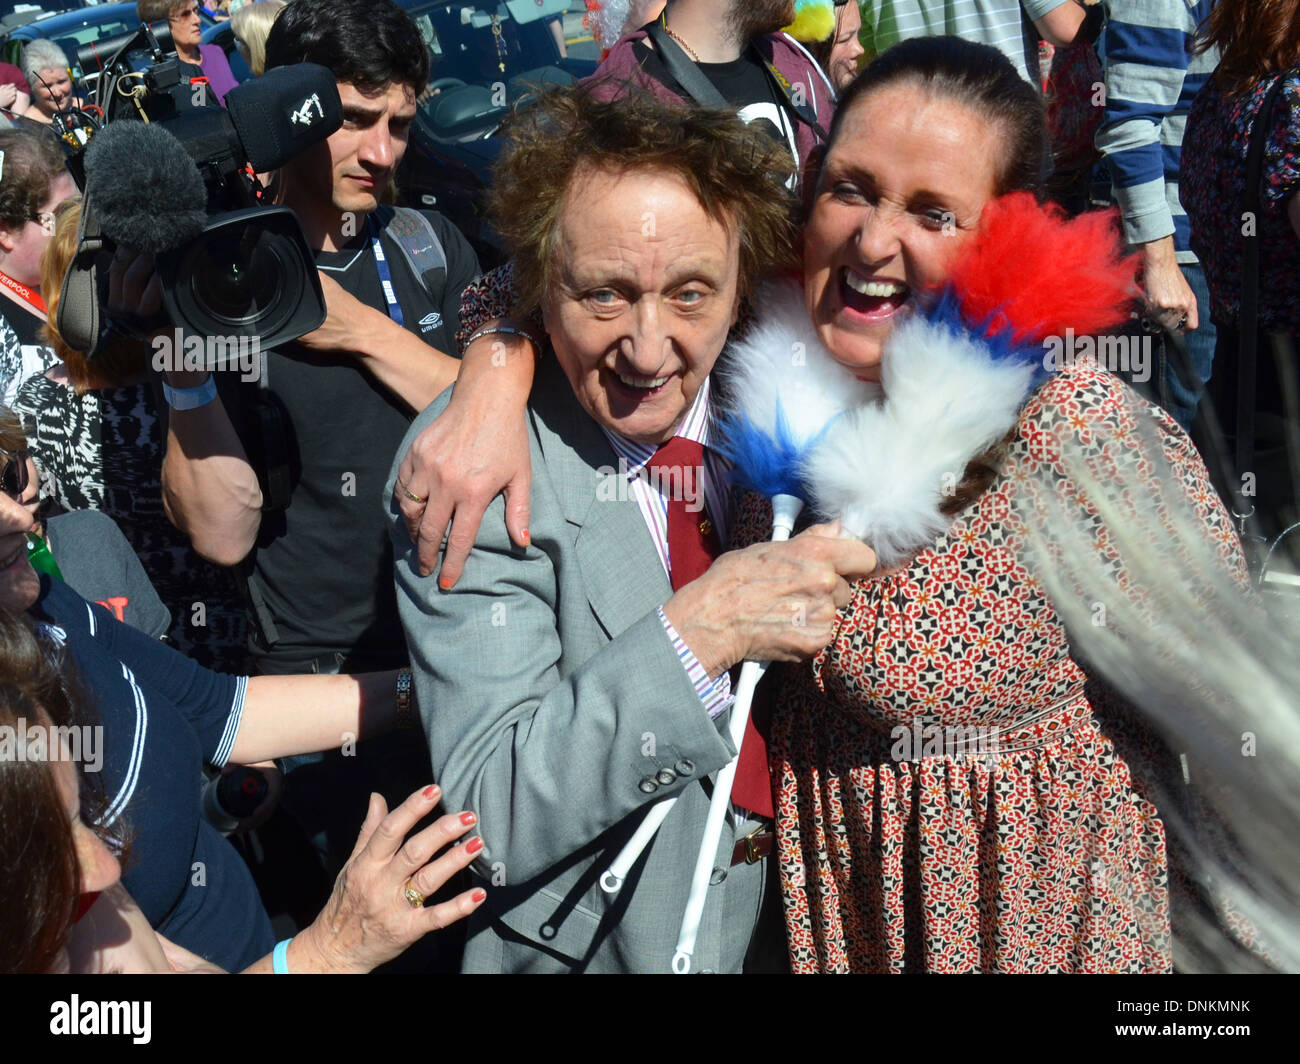 Ken Dodd posing with a fan in Knotty Ash, Liverpool during the 2012 Olympic Torch relay. - Stock Image